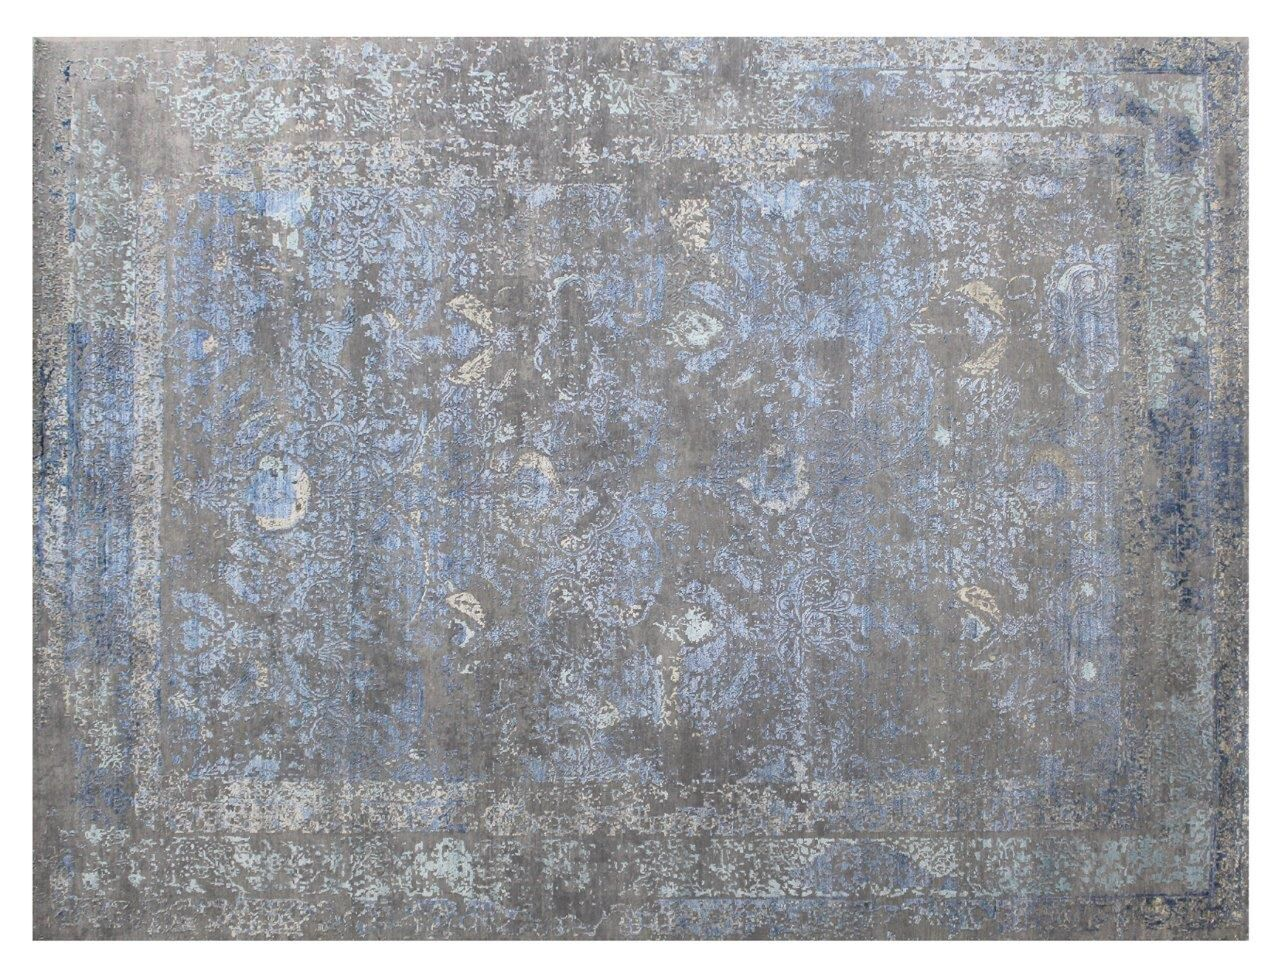 Maison Hand-Knotted Gray/Beige Area Rug Rug Size: Rectangle 9' x 12'